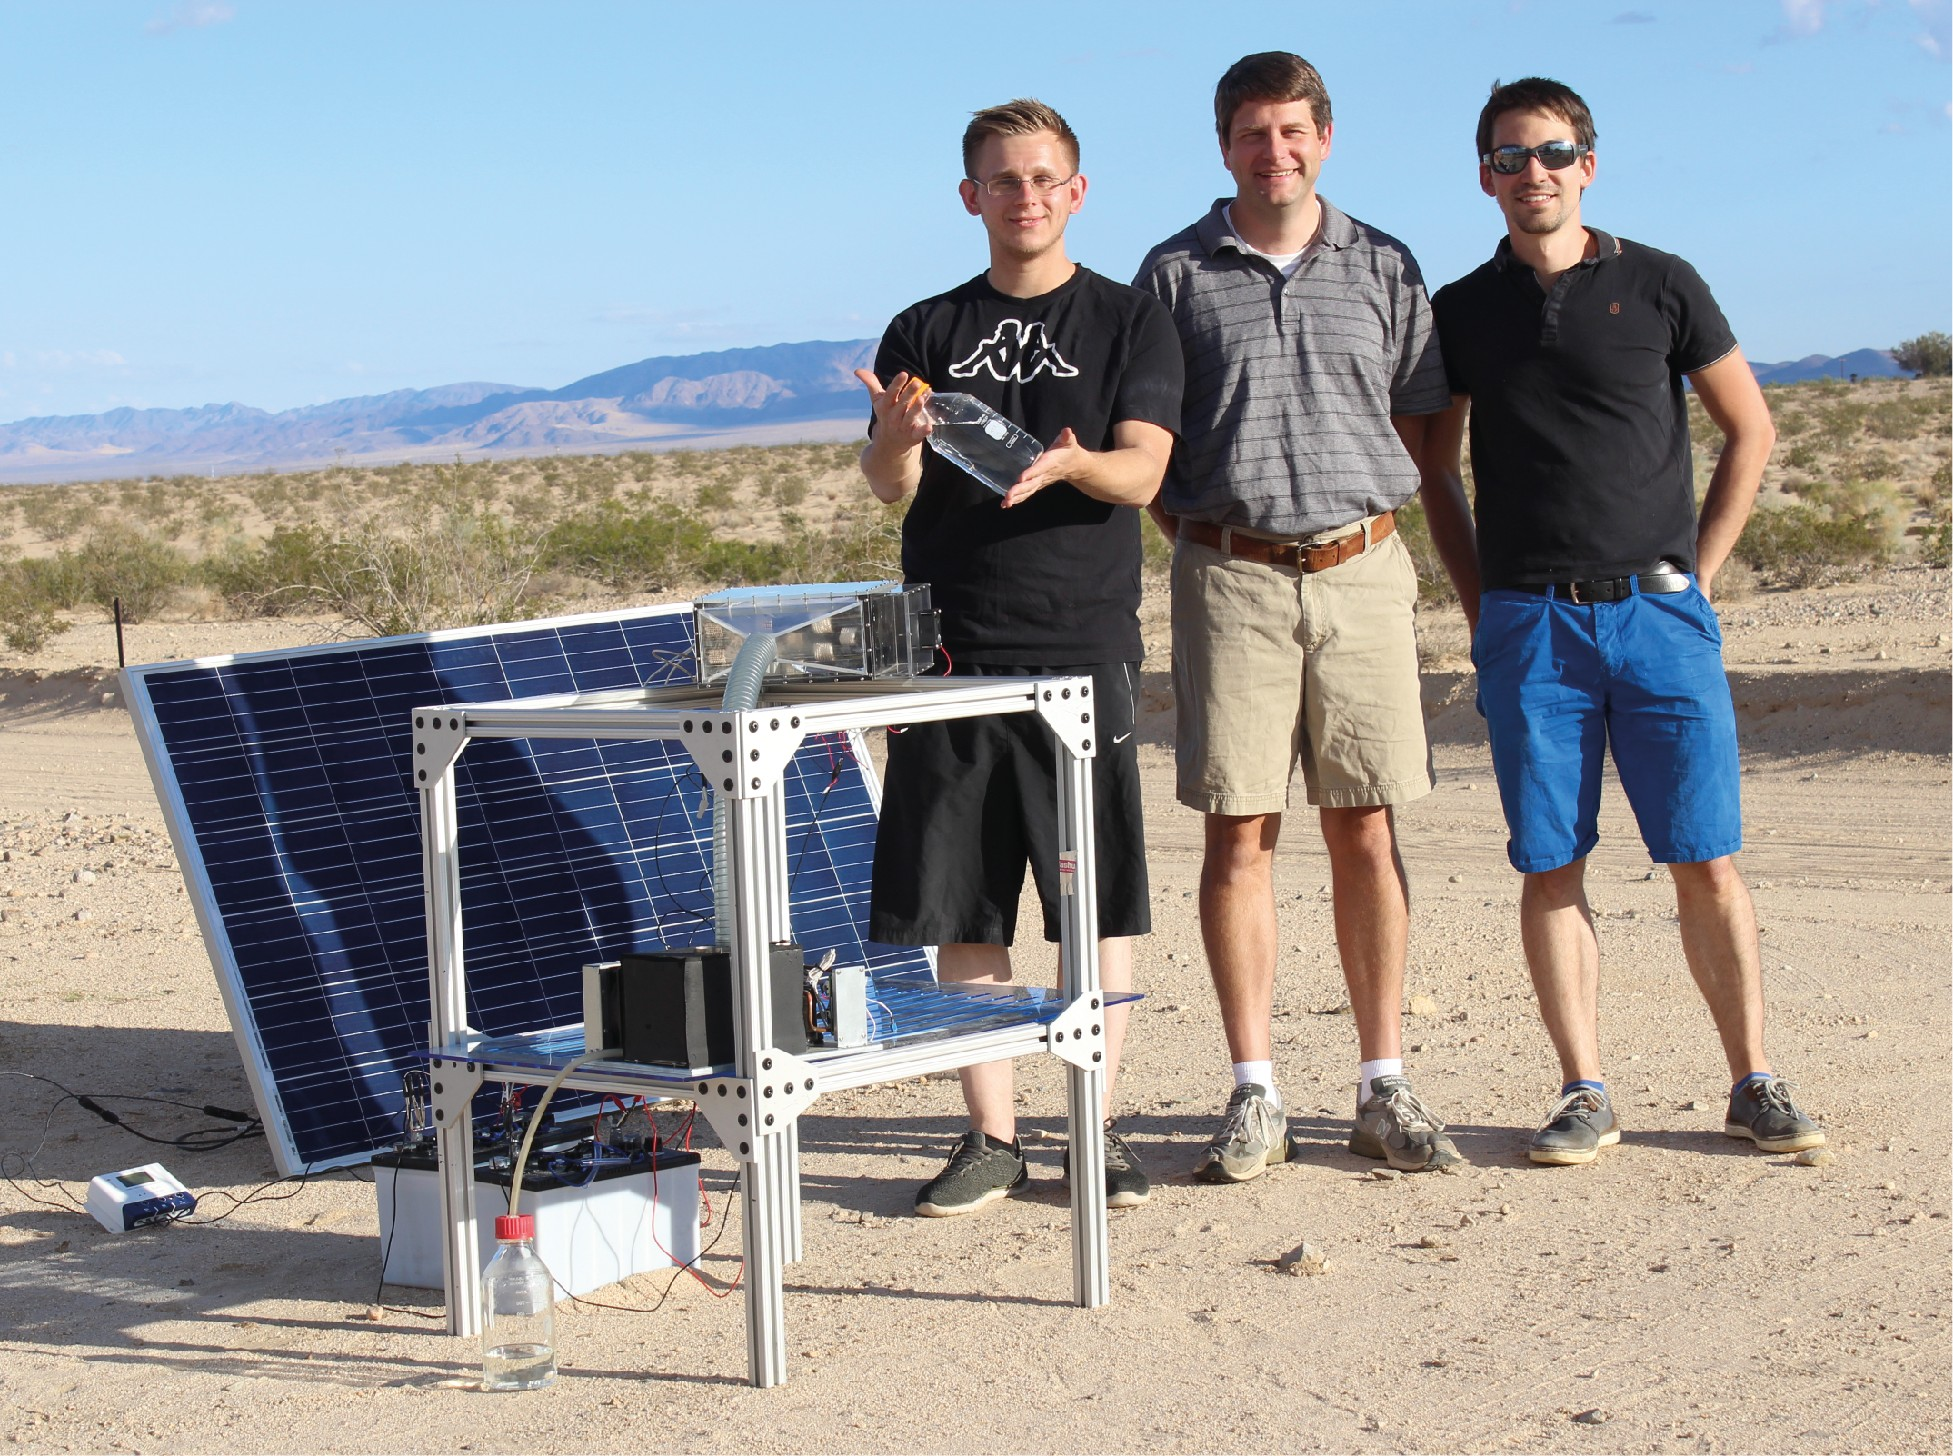 Figure 1: Water harvesting team along with the latest atmospheric, solar-driven MOF-based water harvester.